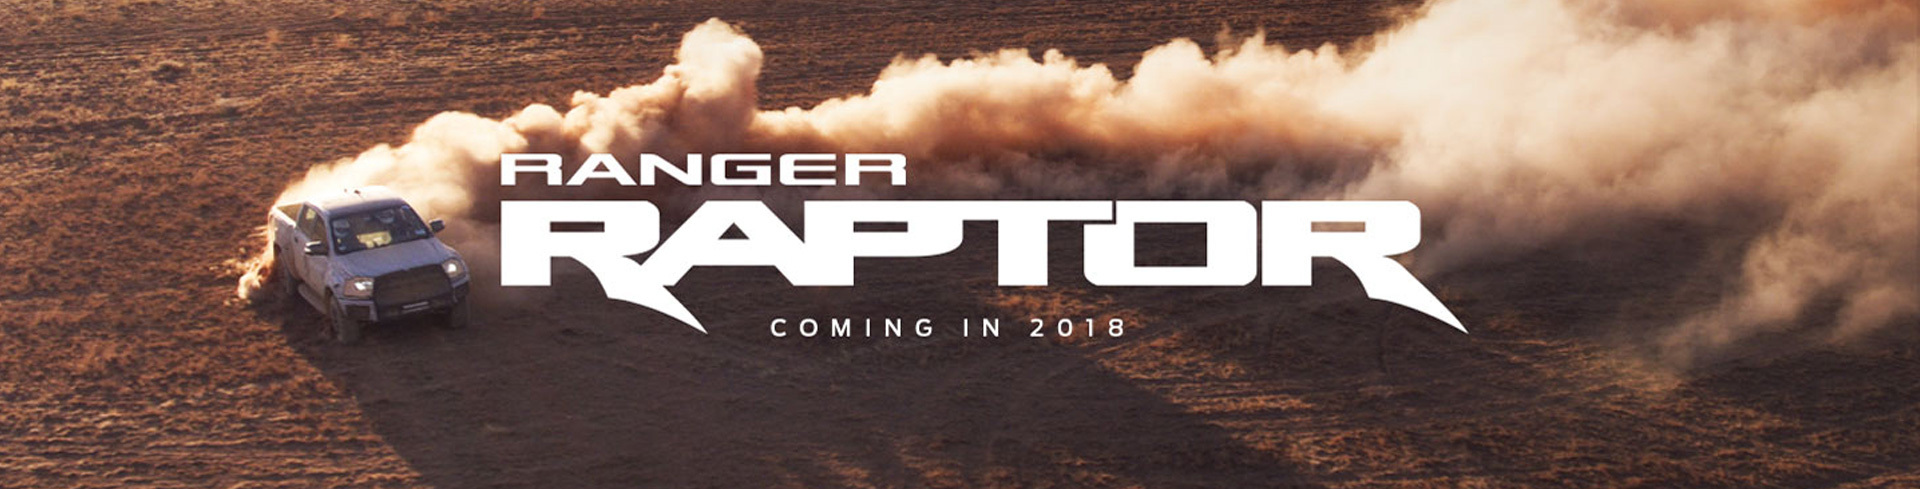 Coming Soon Ford Ranger Raptor